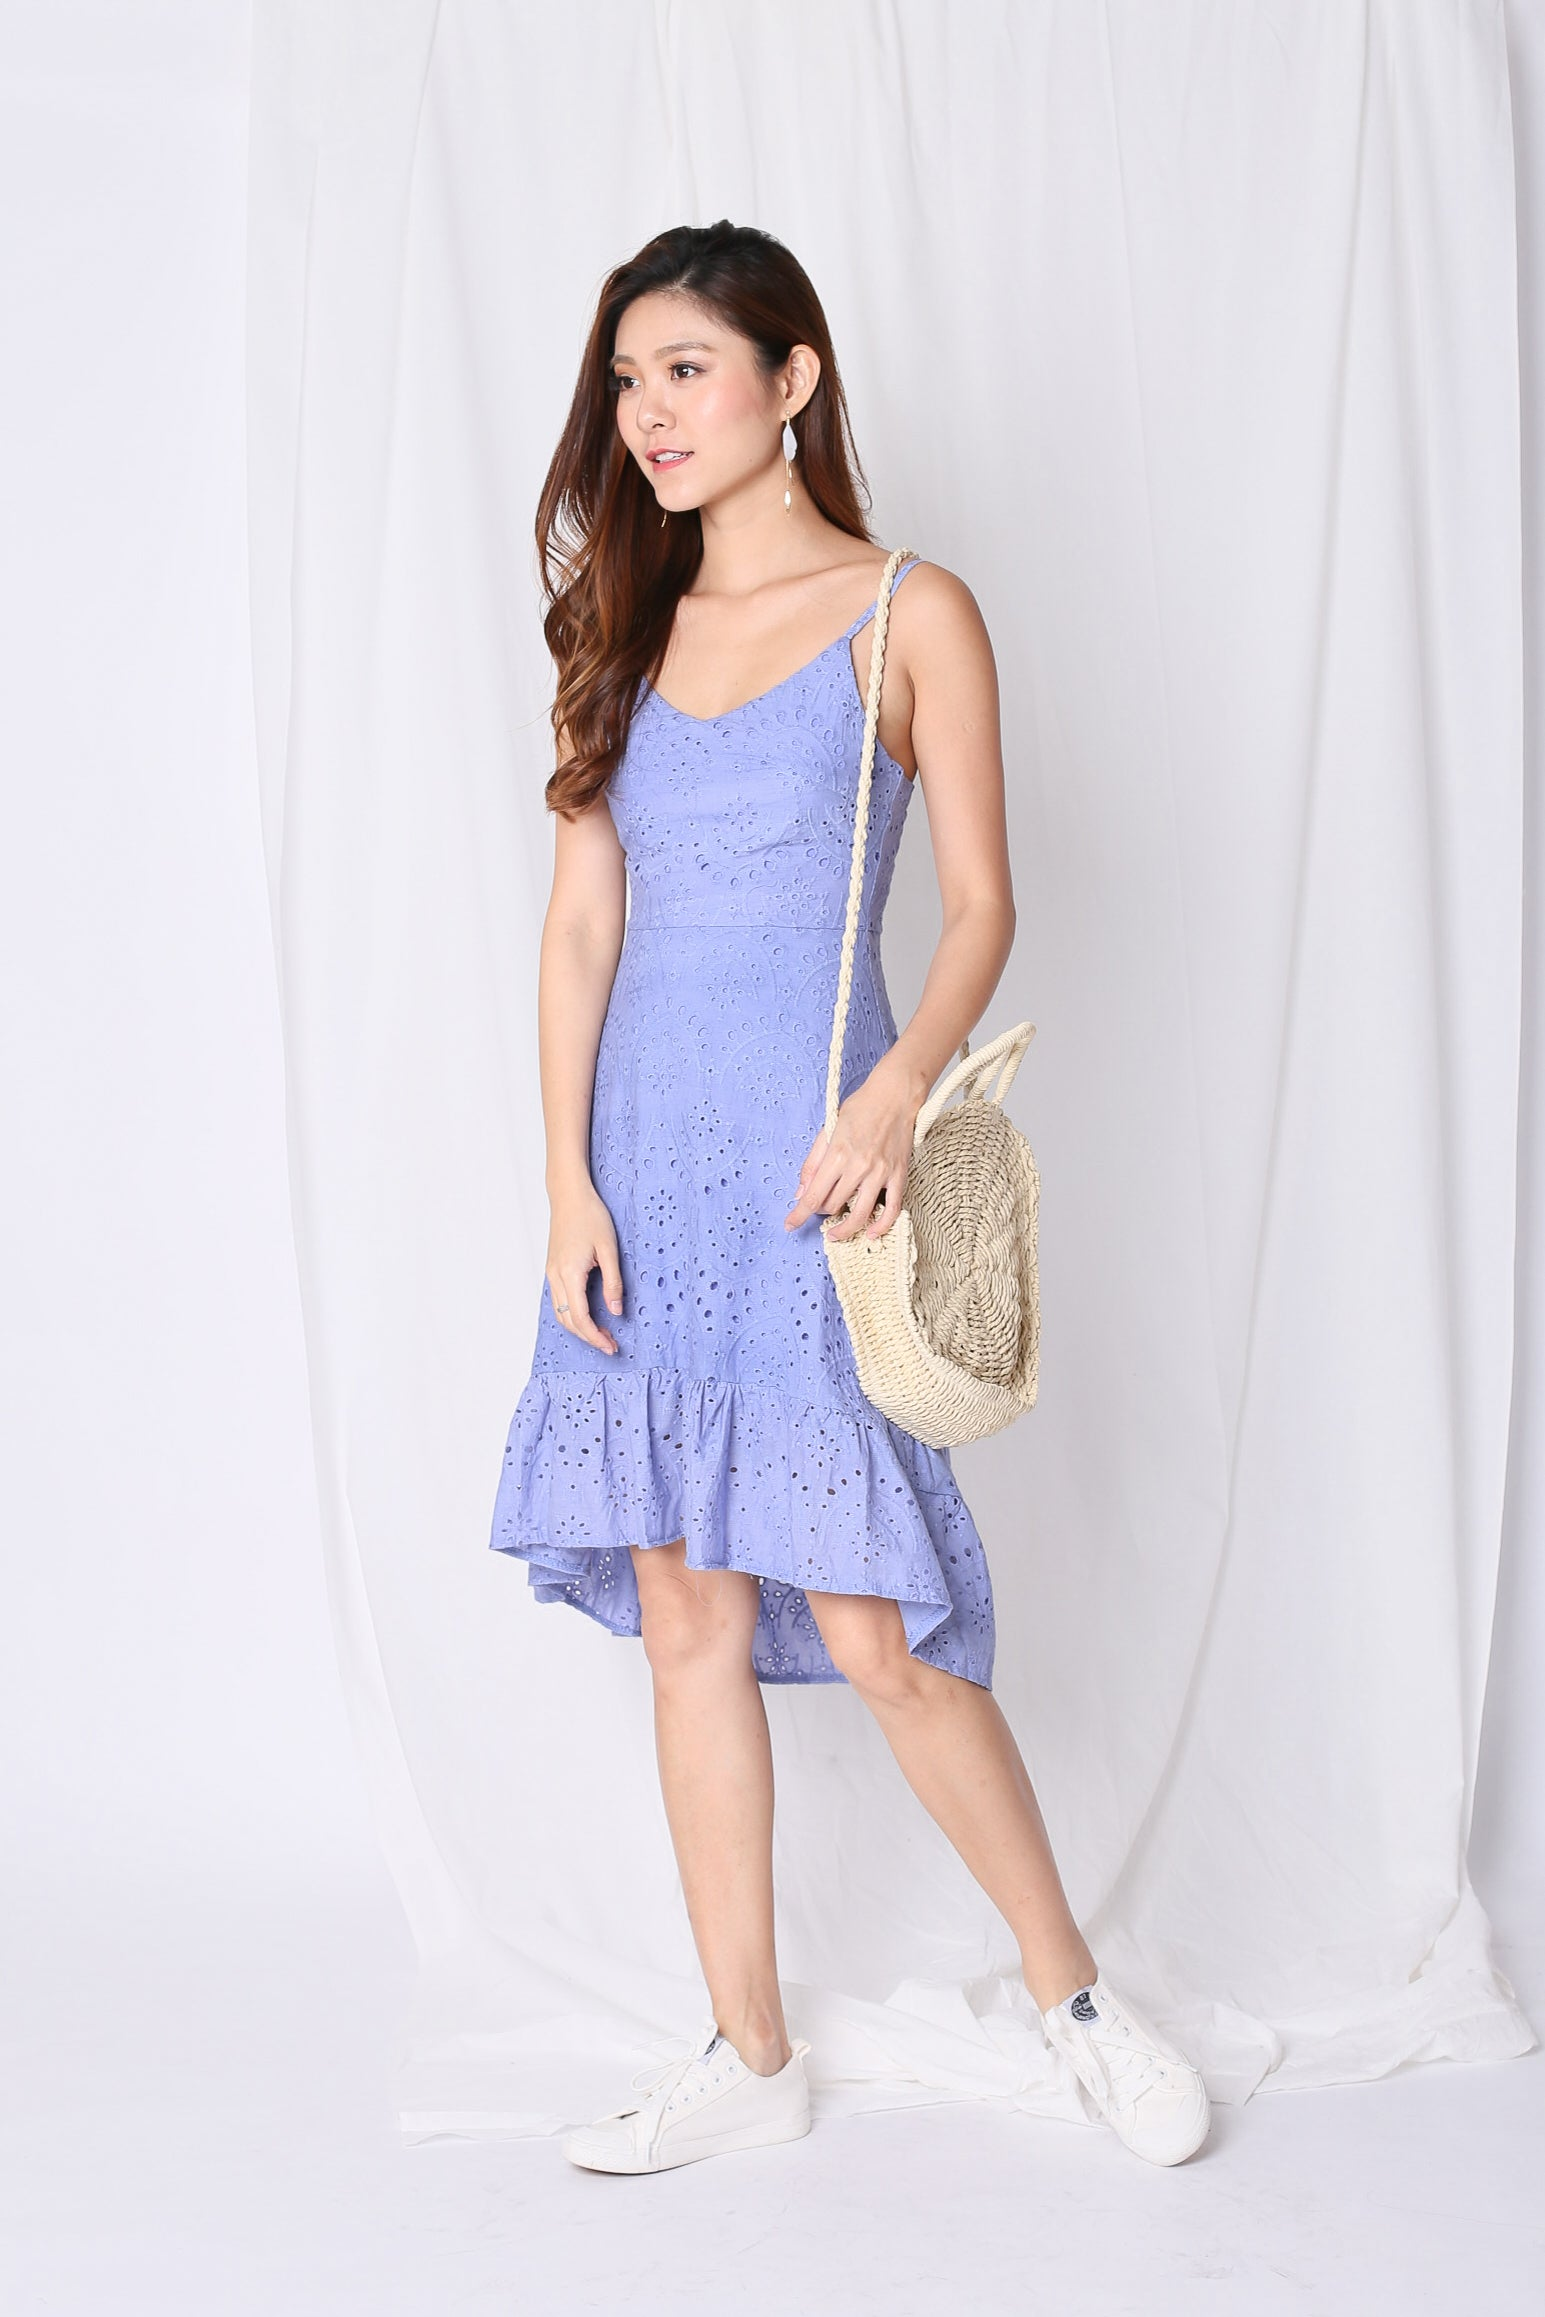 *TPZ* (PREMIUM) SHEVELLE EYELET DRESS IN PERIWINKLE